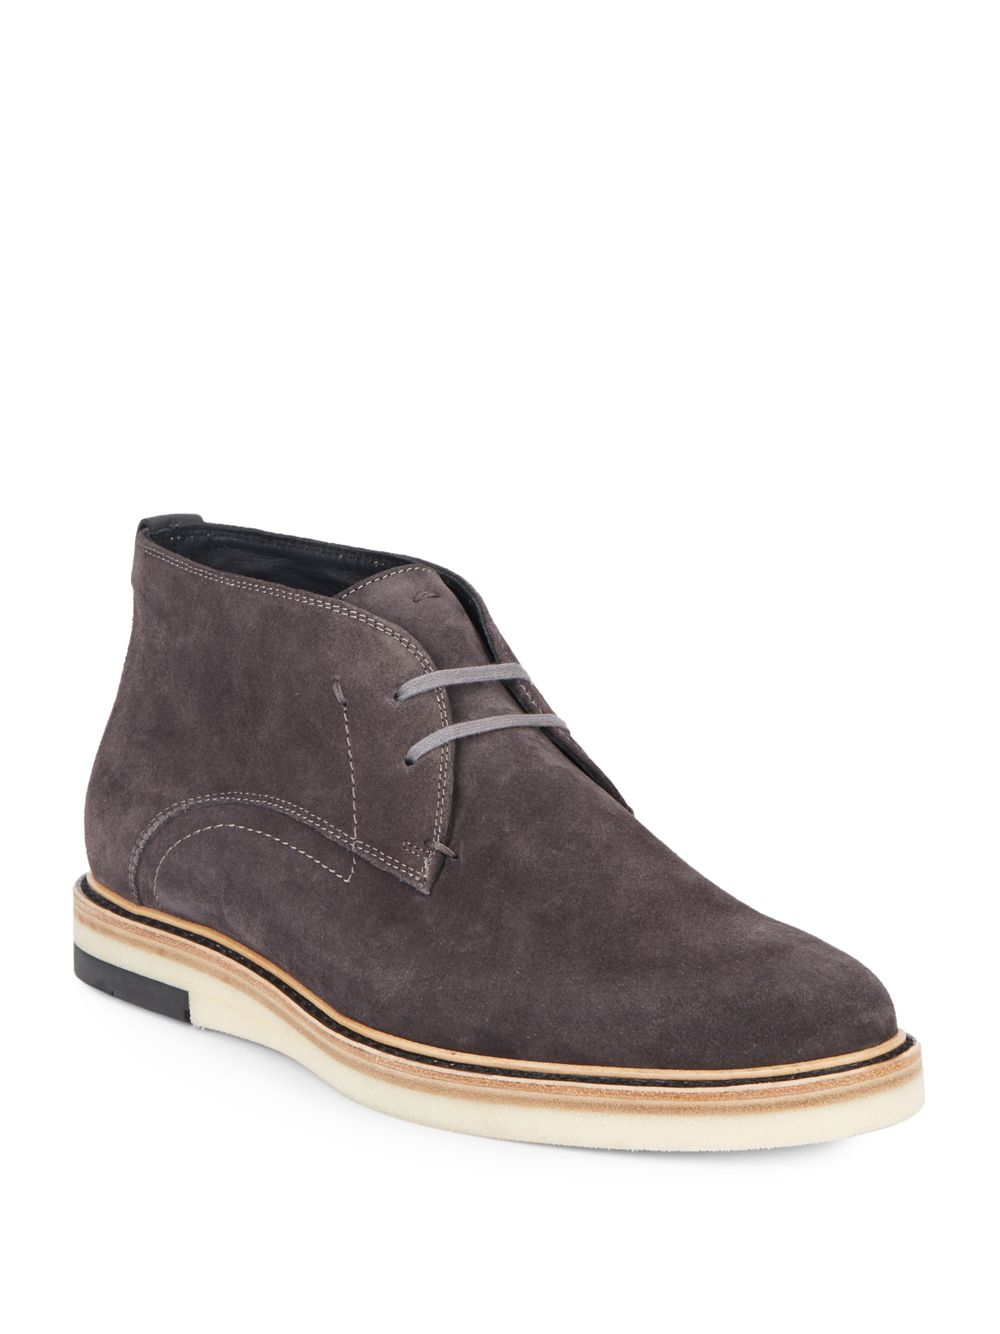 Fendi Suede Chukka Boots in Gray for Men | Lyst